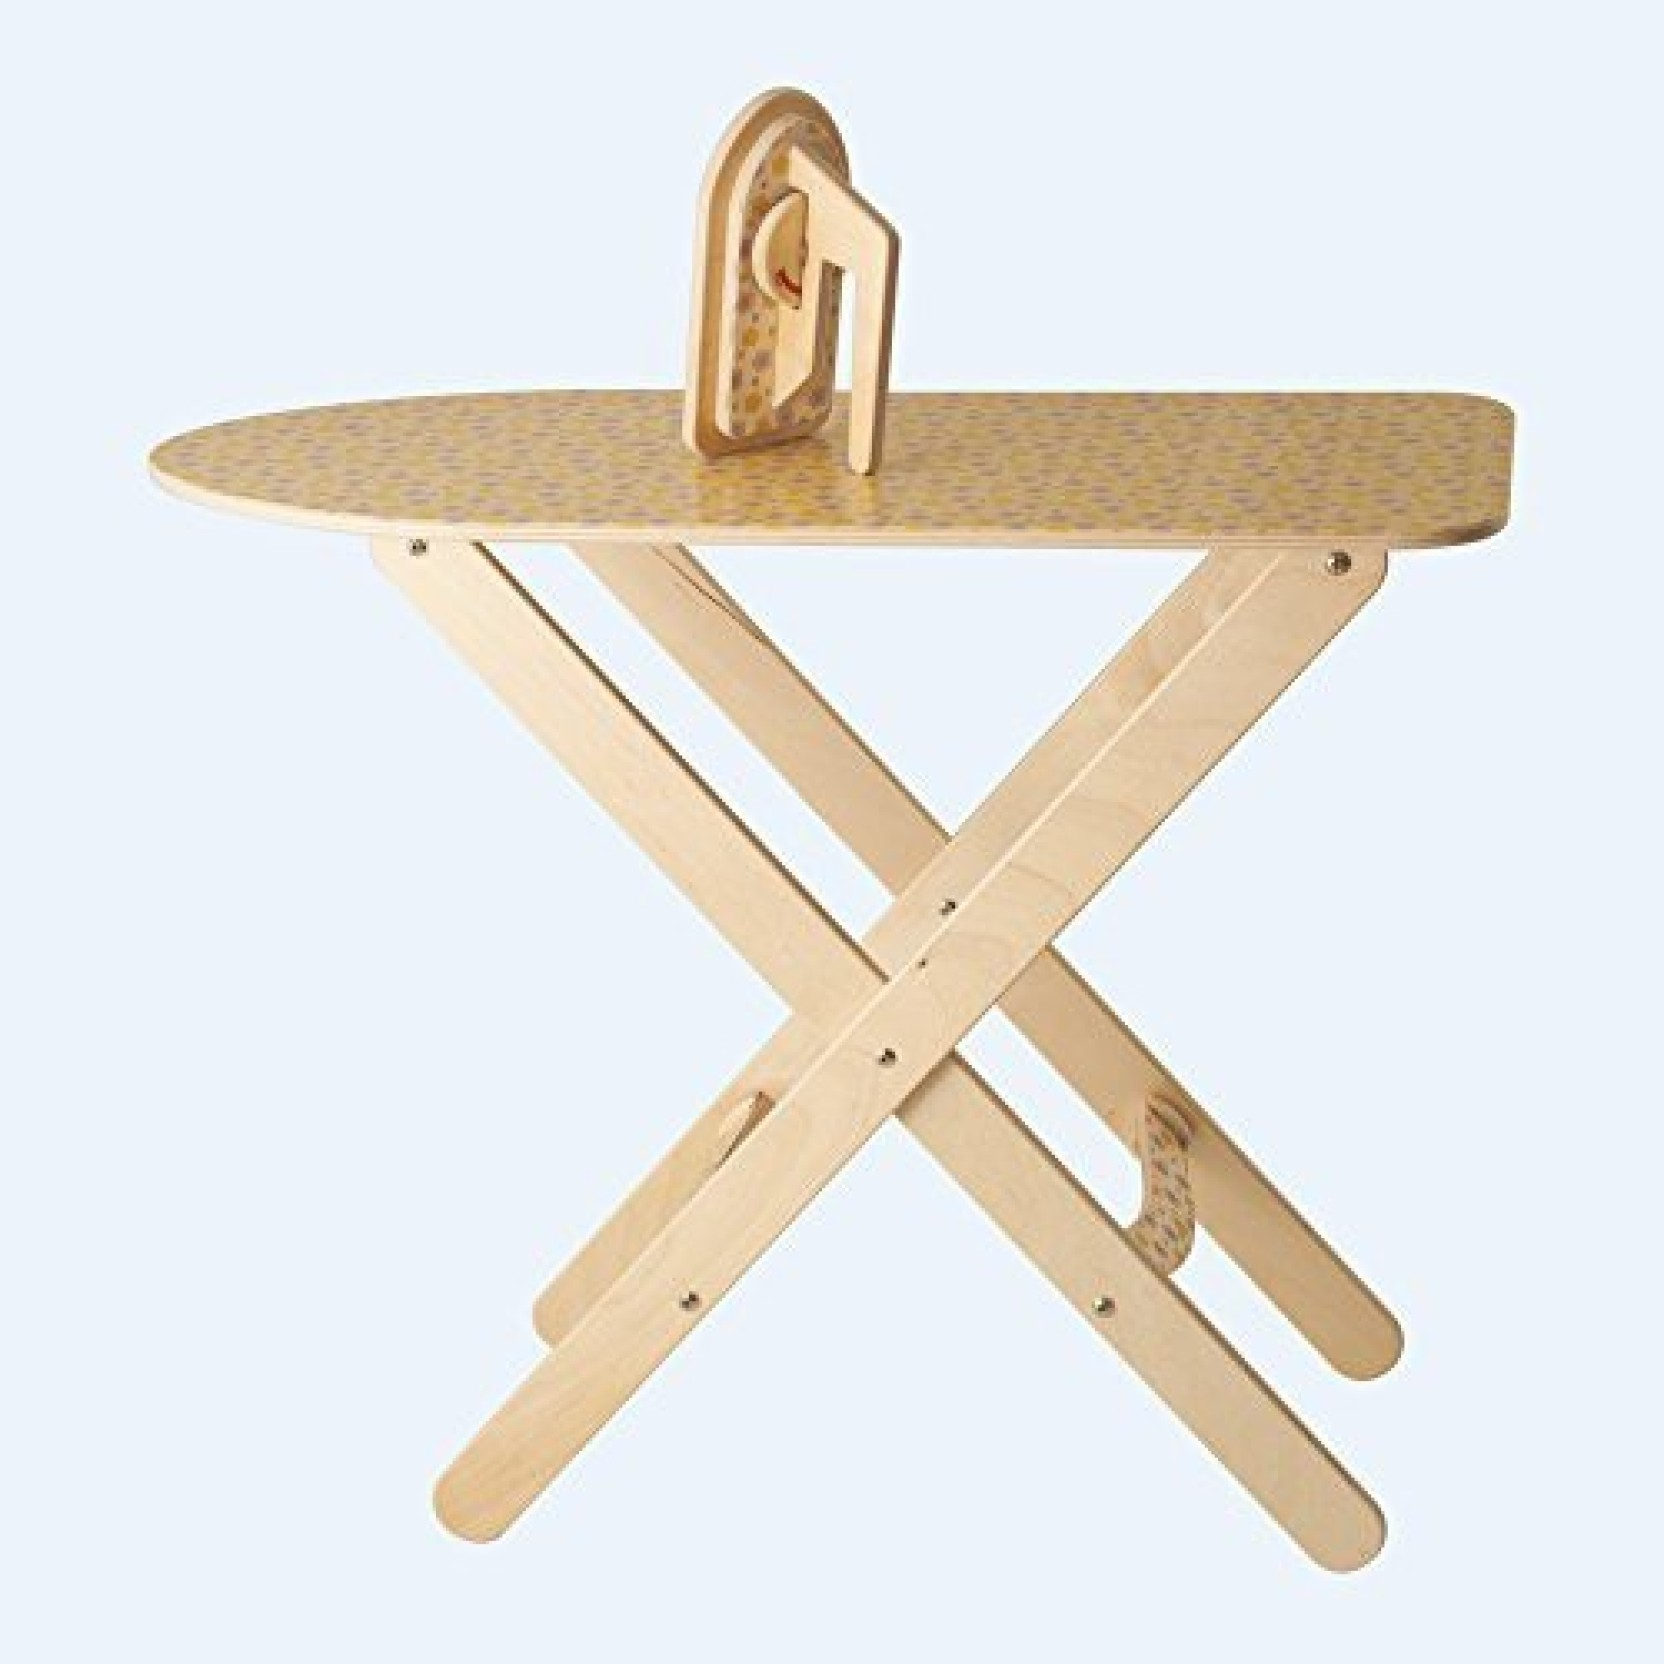 generic dida - ironing board with iron toy wooden imitation